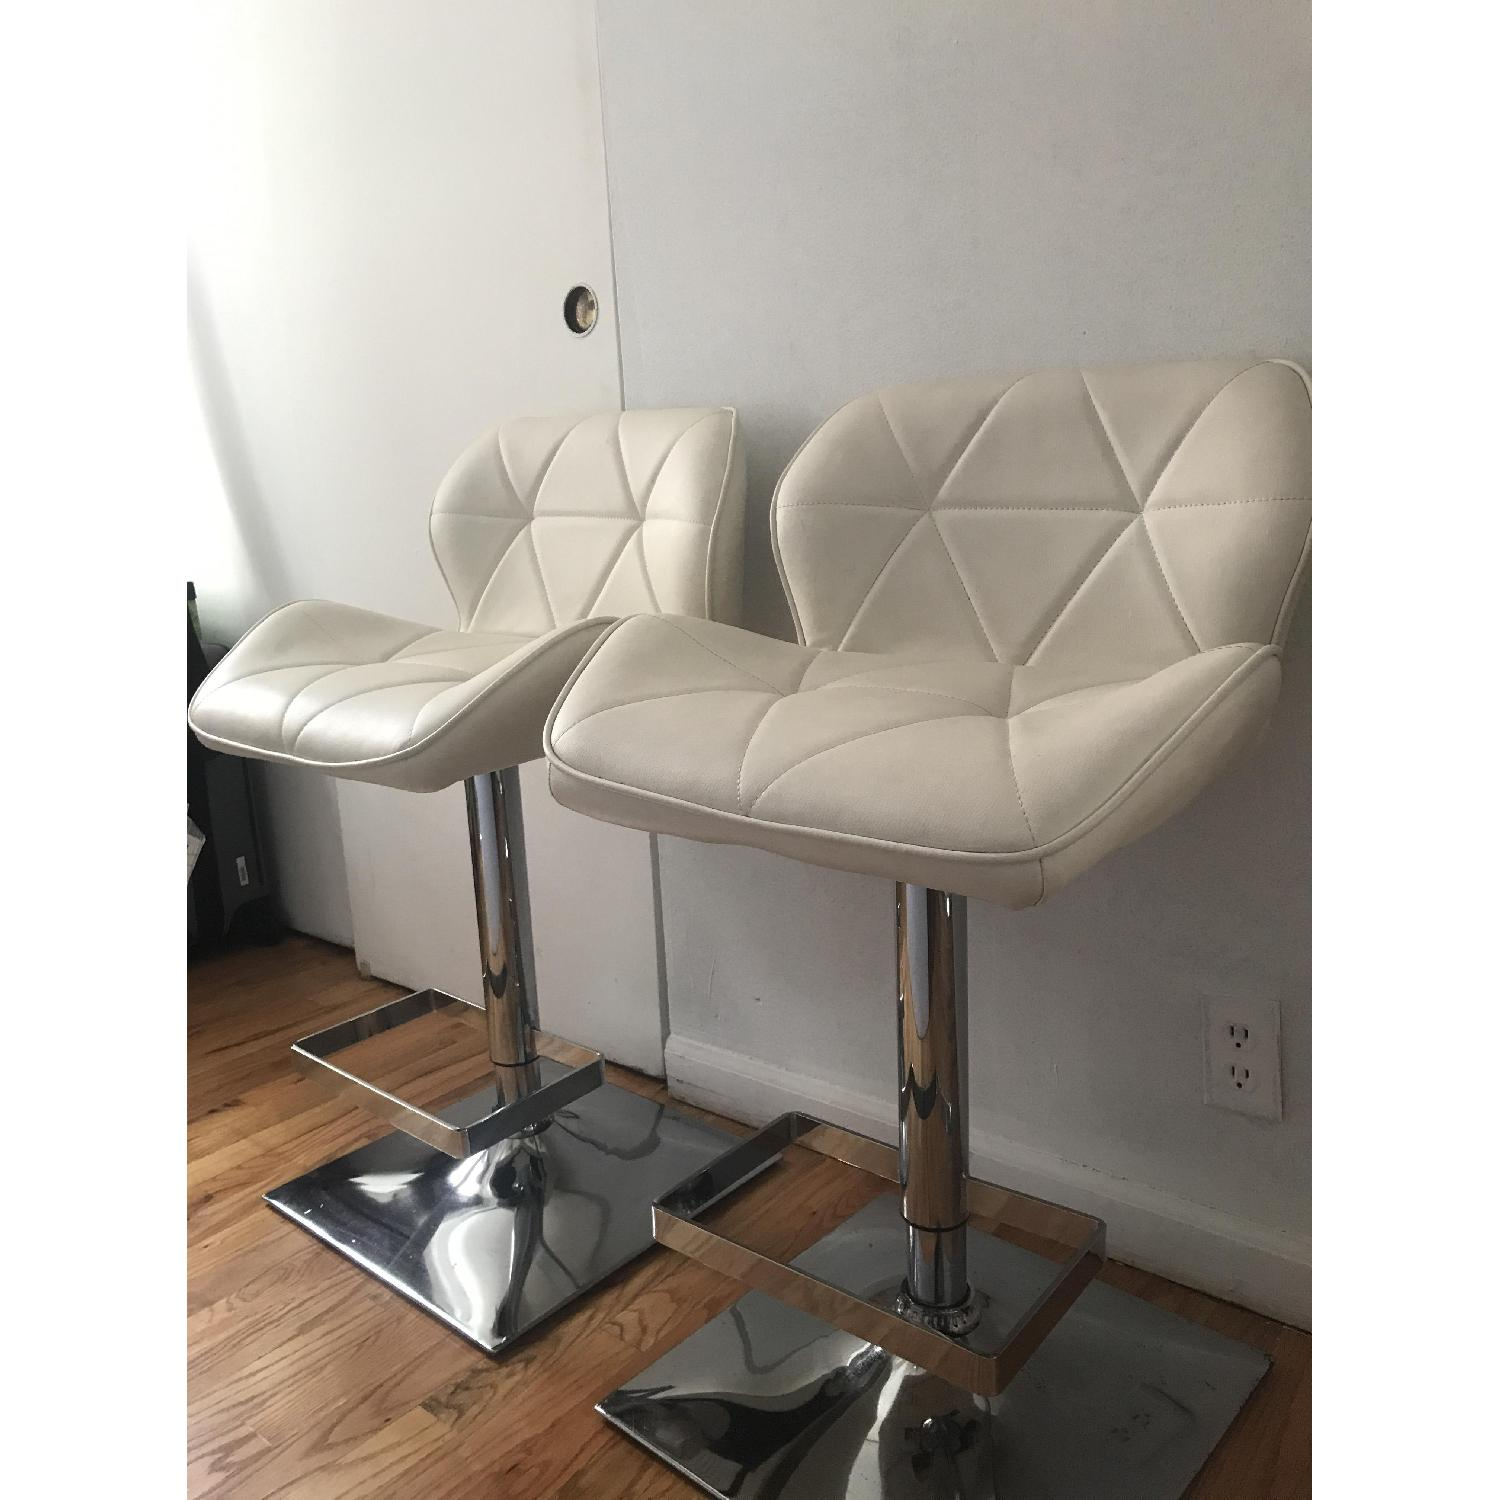 Anji Tianwei Steel White Faux Leather Bar Chairs - image-2